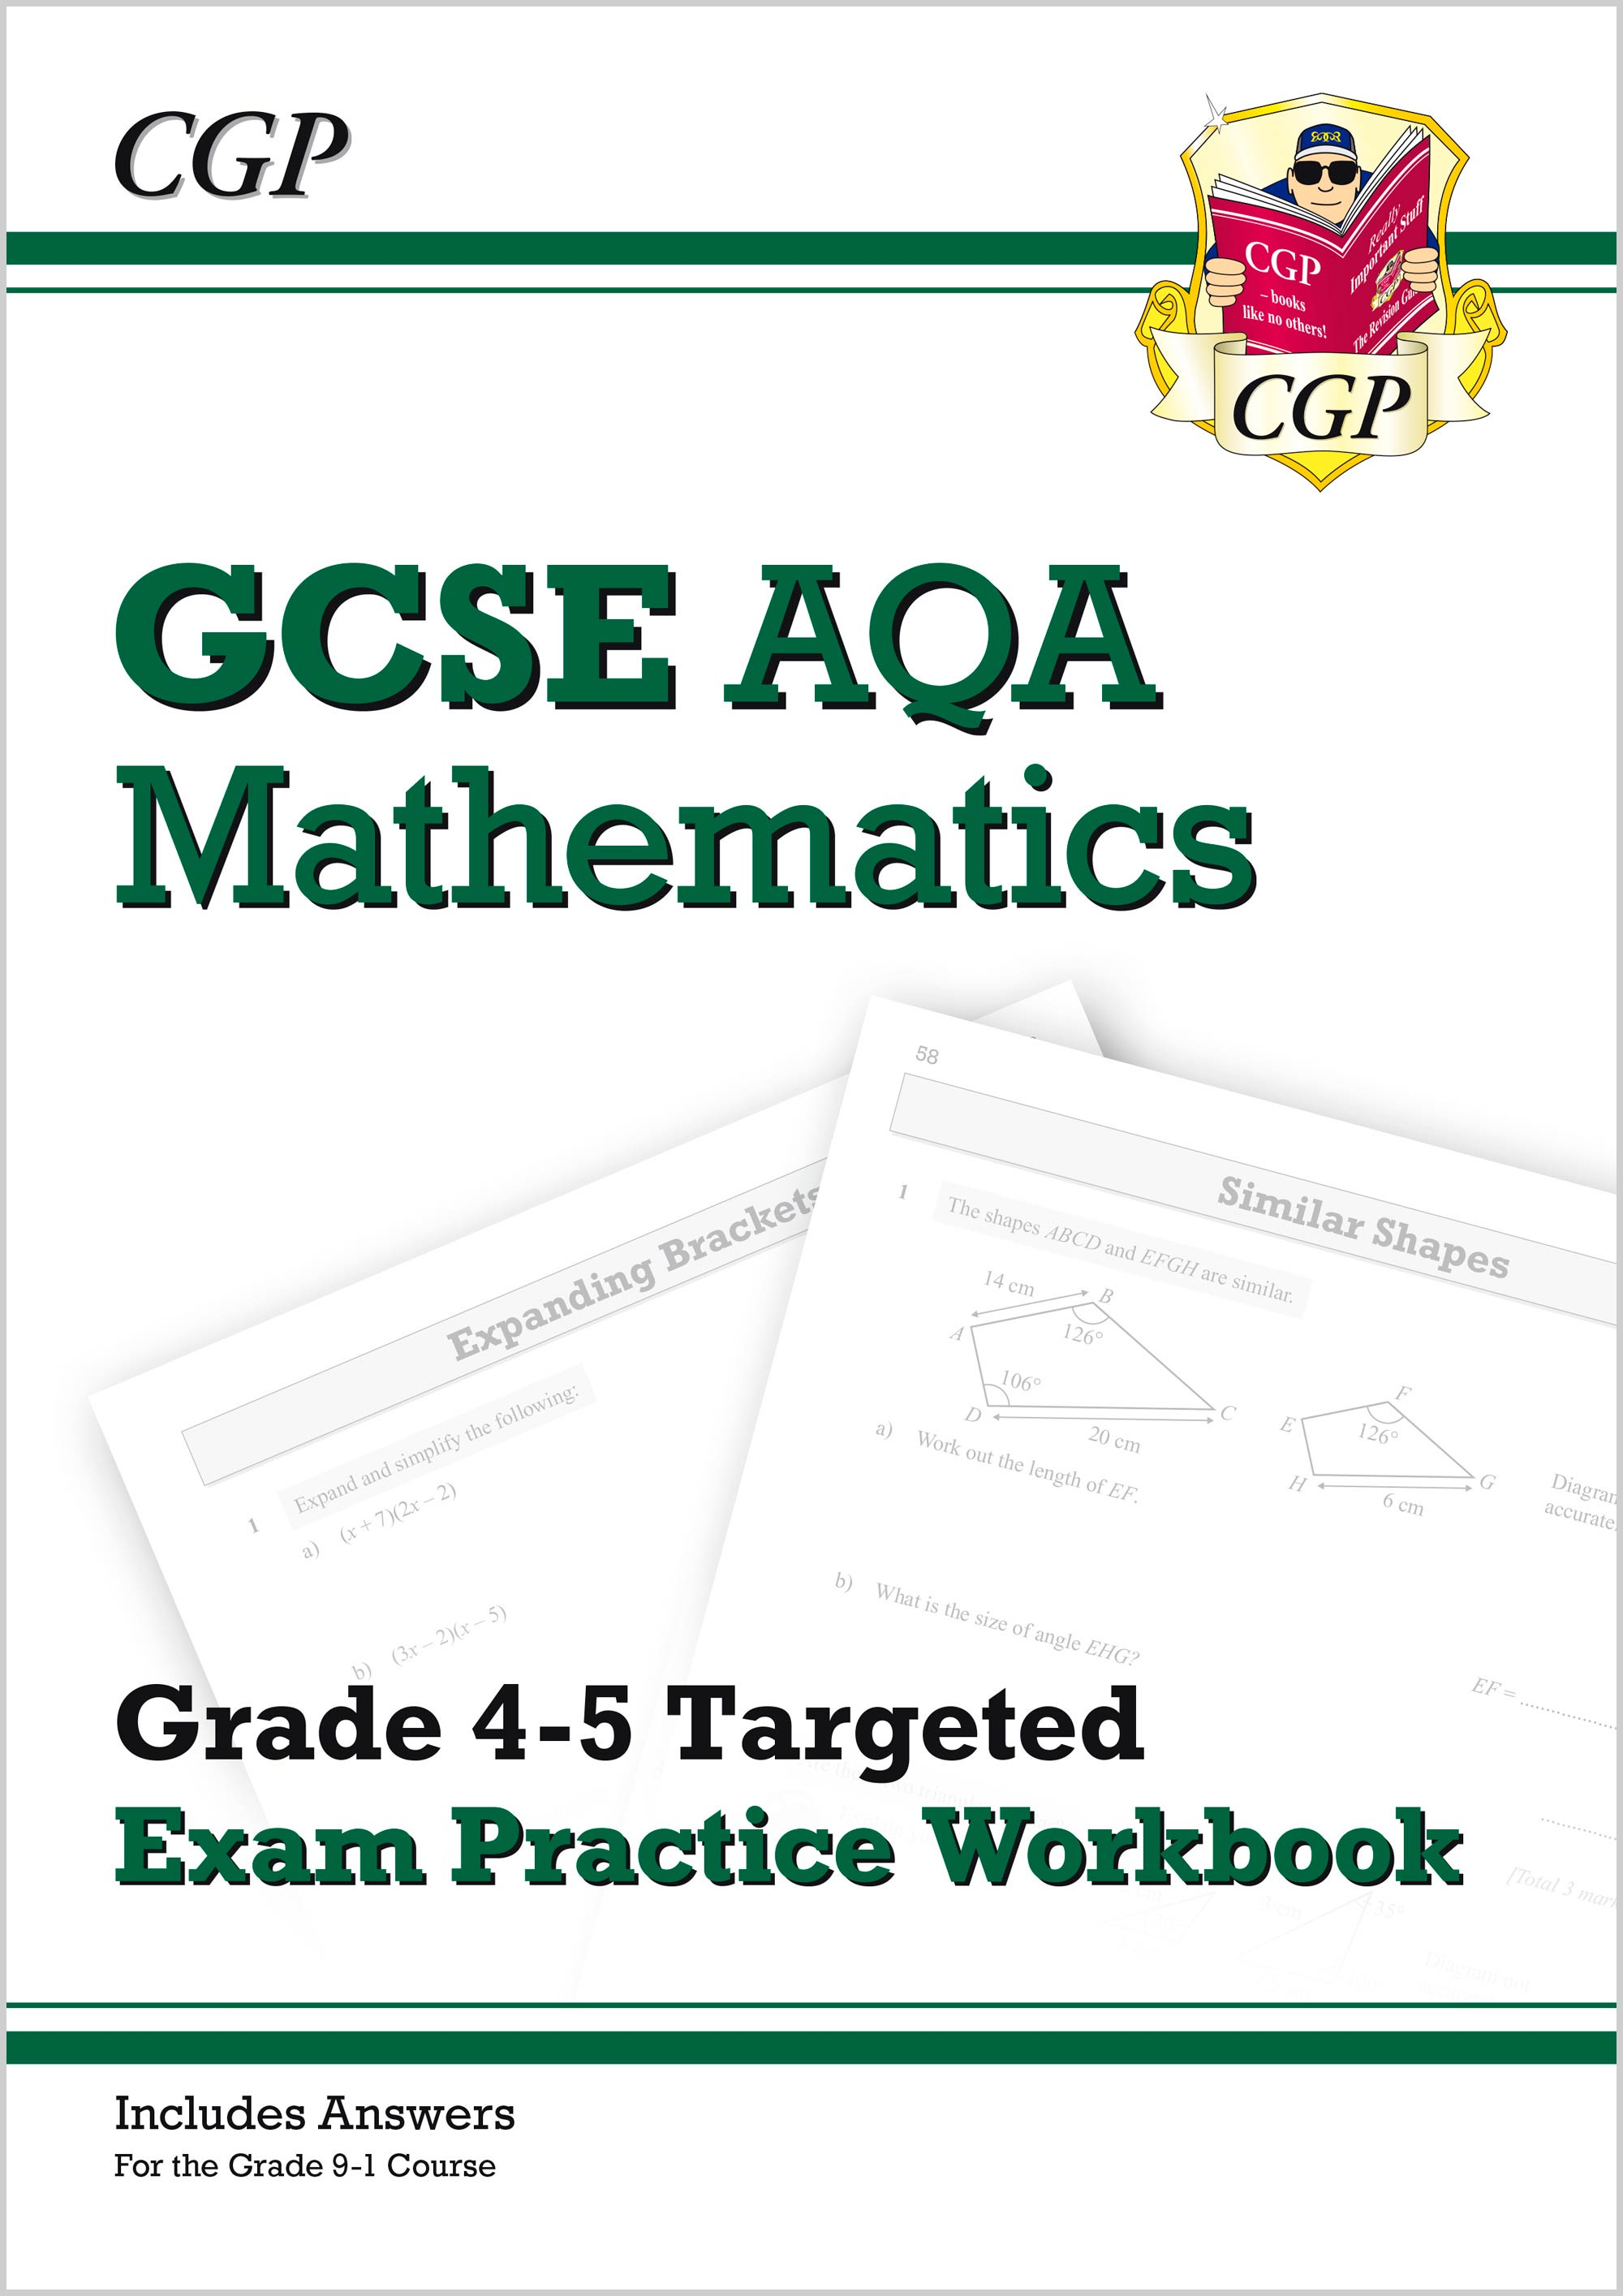 MQ5Q41 - GCSE Maths AQA Grade 4-5 Targeted Exam Practice Workbook (includes answers)